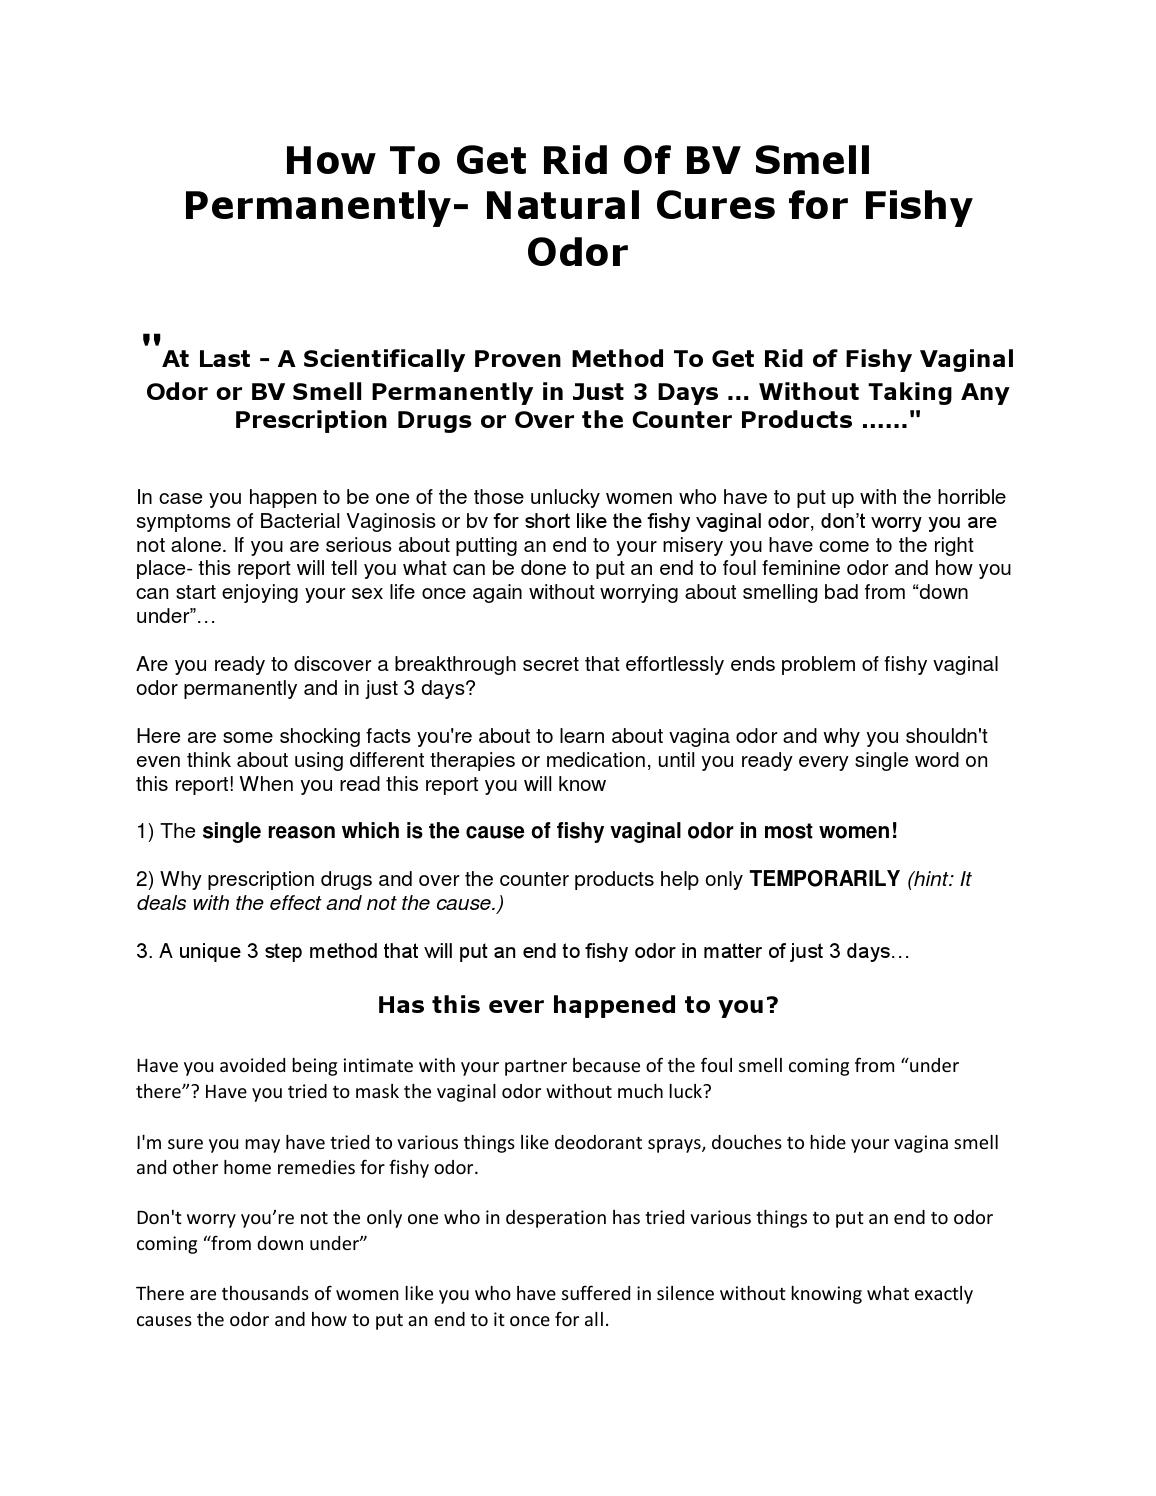 How to get rid of bv smell permanently by melaniehealth for How to get rid of fish odor